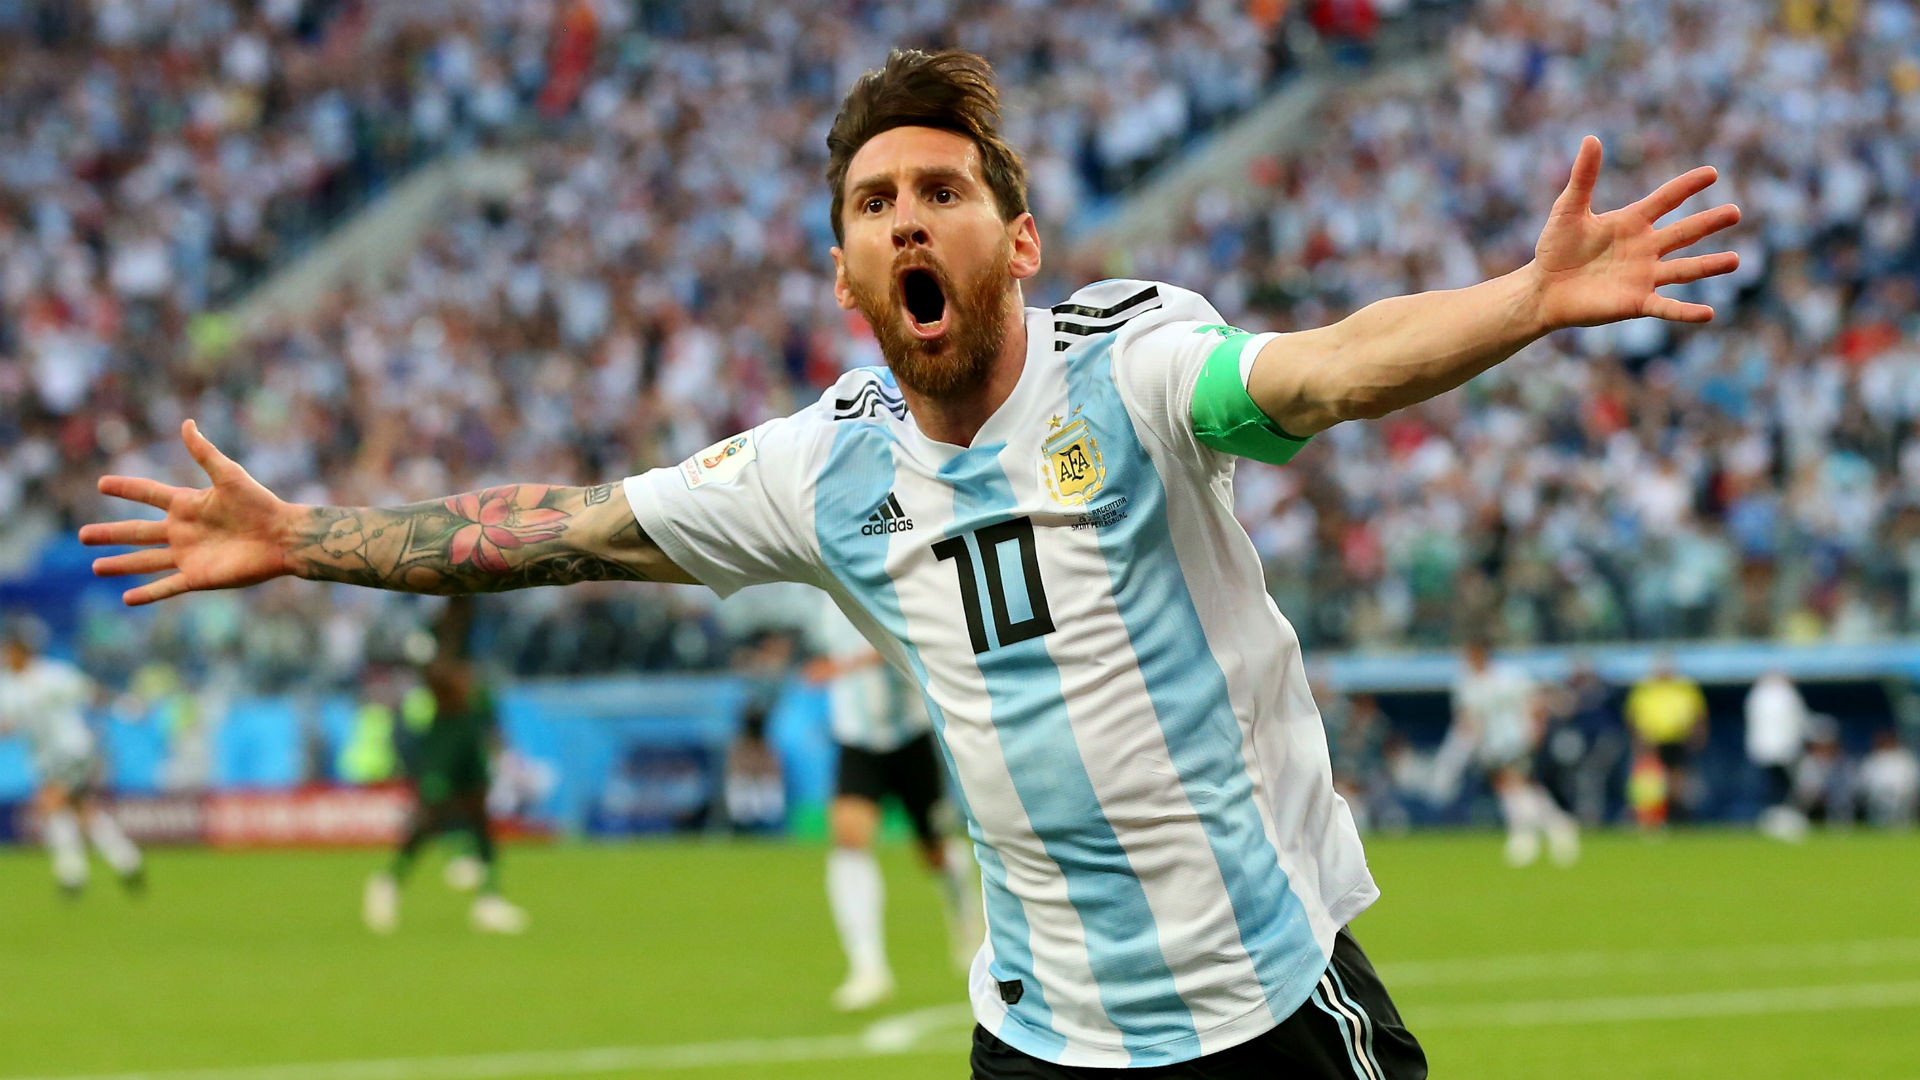 Can Lionel Messi save Argentina at the 2018 World Cup?